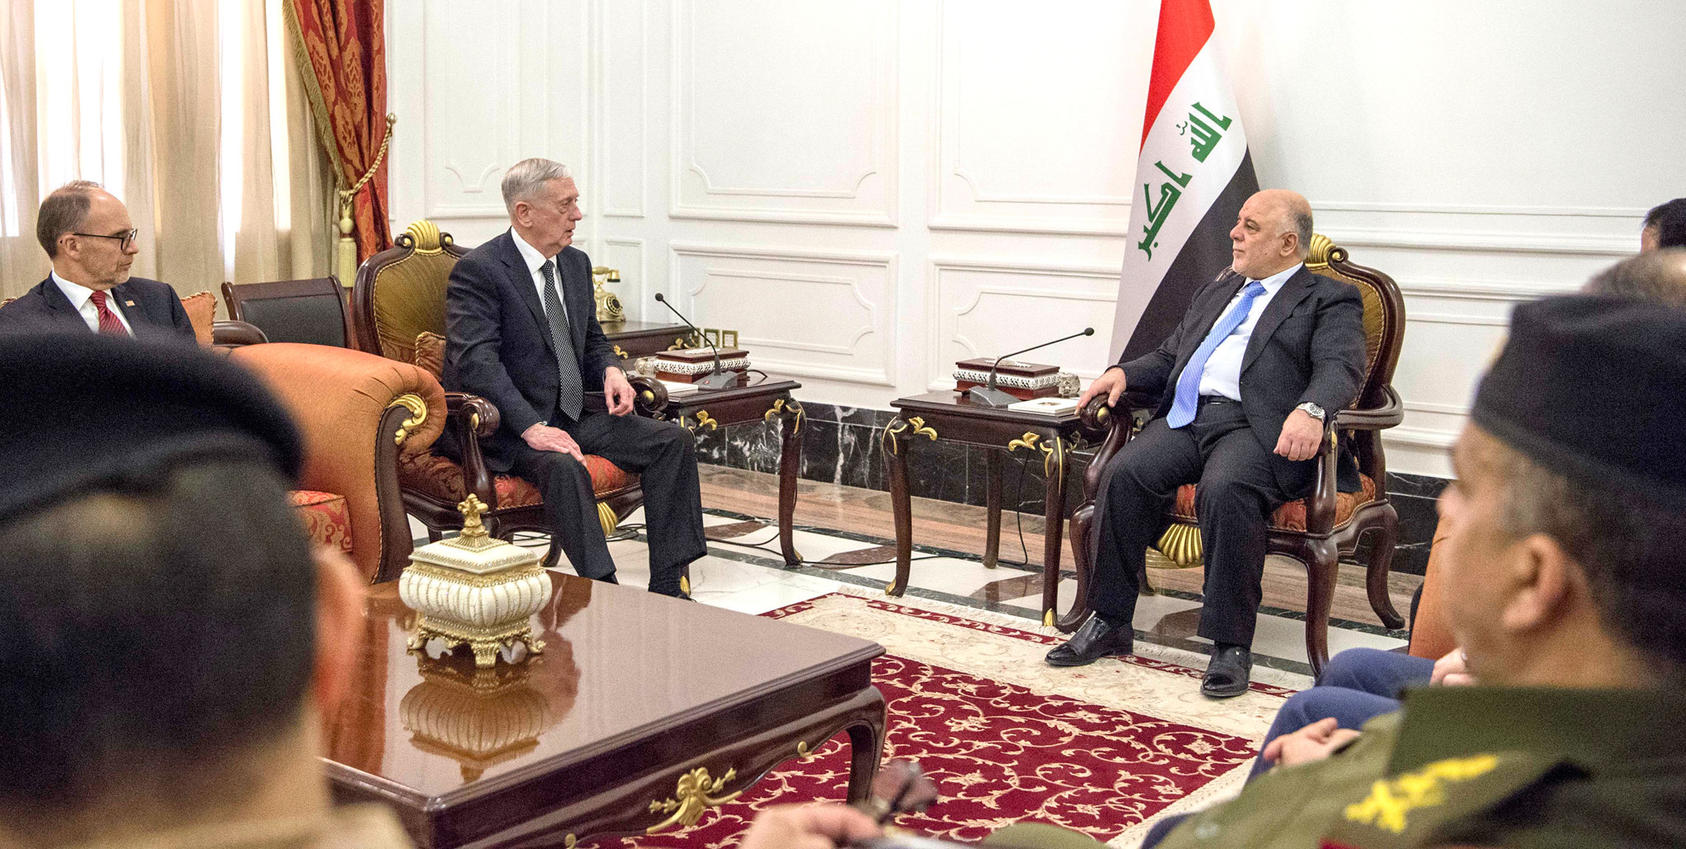 Secretary of Defense Jim Mattis meets with Iraqi Prime Minister Haider al-Abadi in Baghdad, Iraq, Feb. 20, 2017. (DOD photo by U.S. Air Force Tech. Sgt. Brigitte N. Brantley)